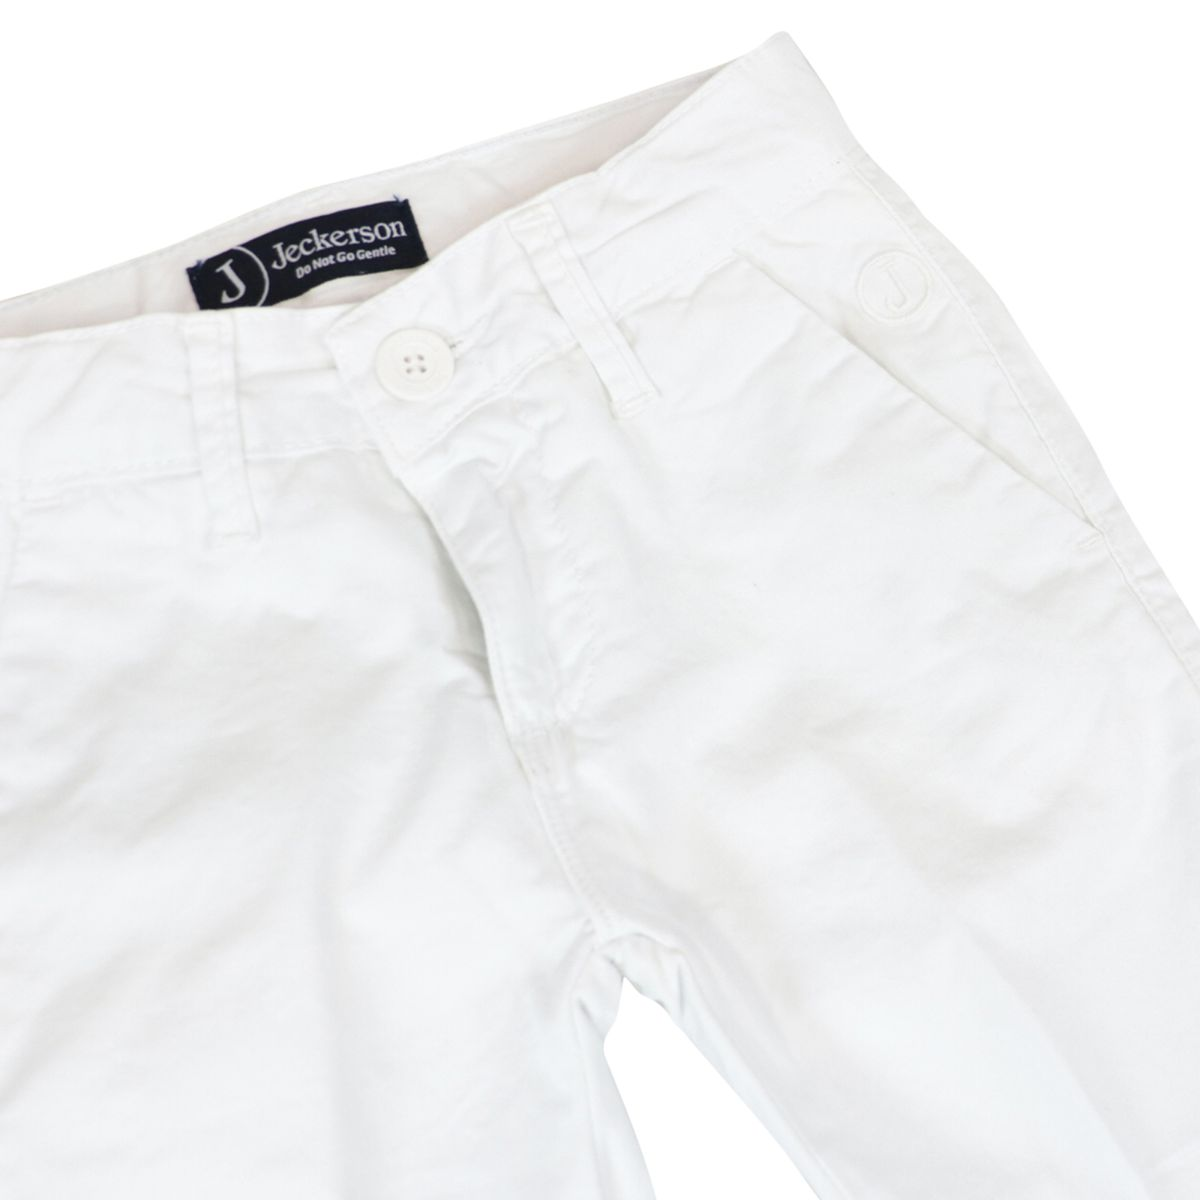 Cinos gabardine trousers with america pocket White Jeckerson